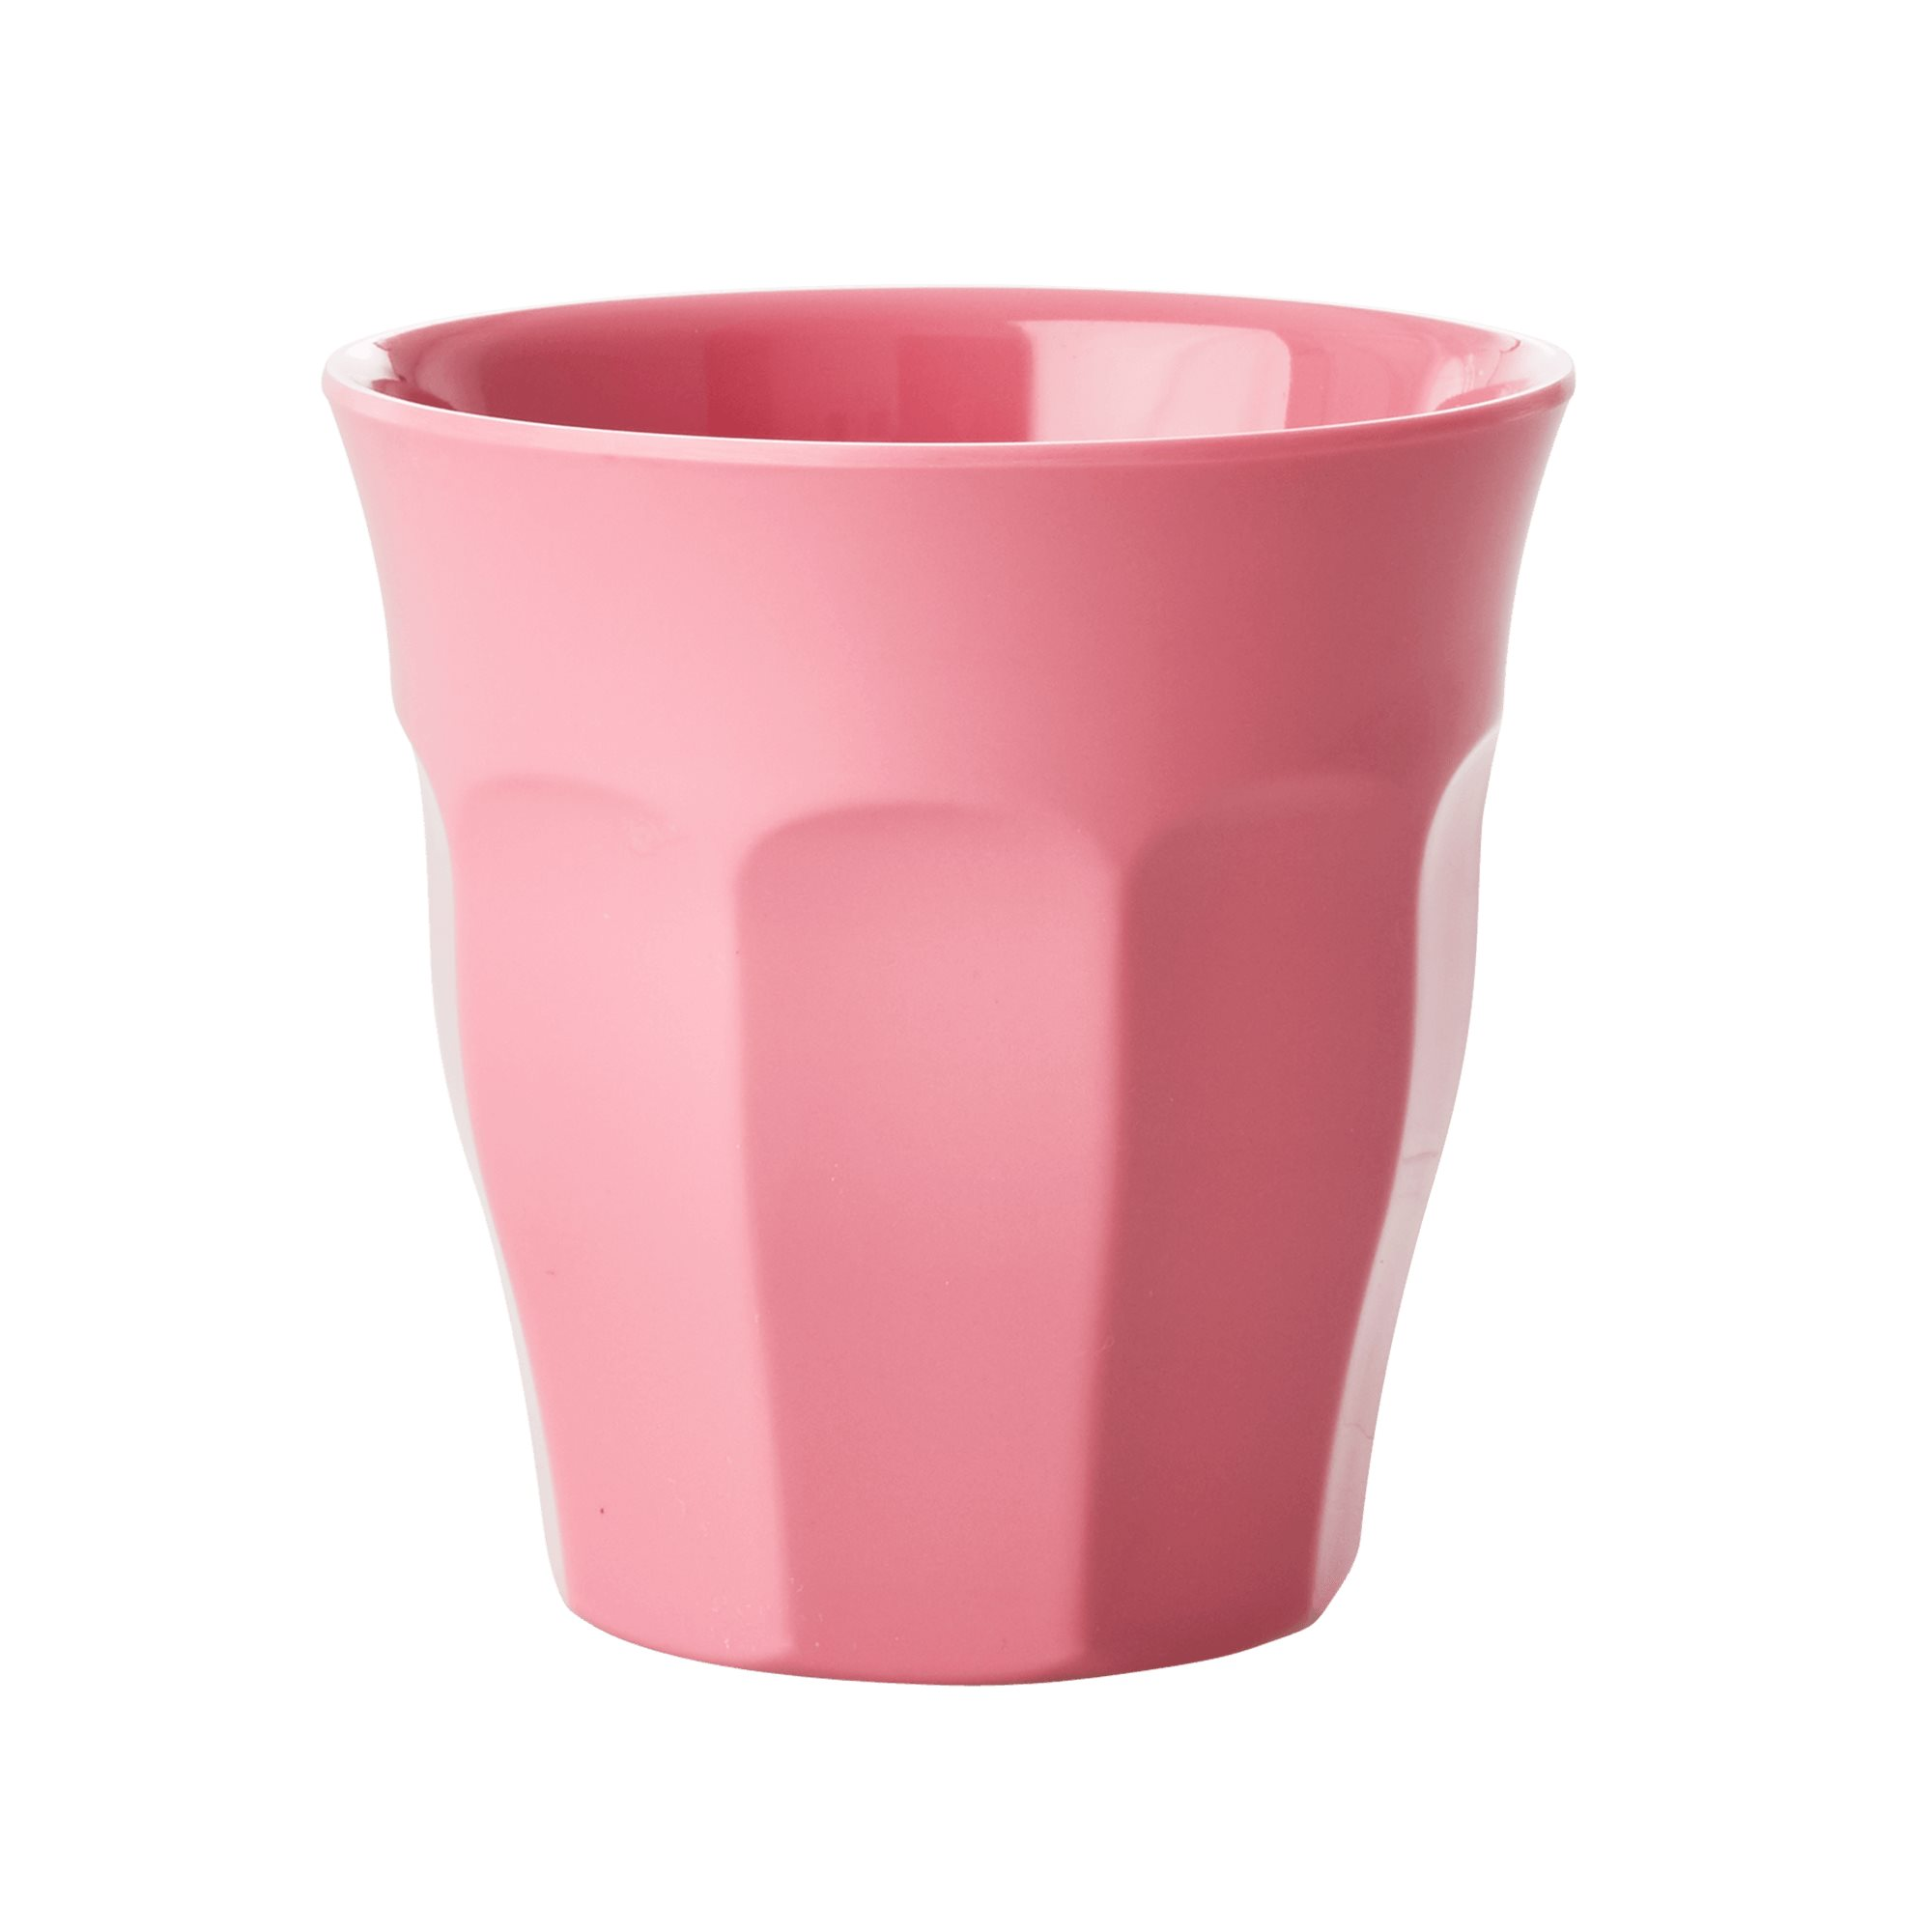 Medium Melamine Cup - Uni rosa - rice